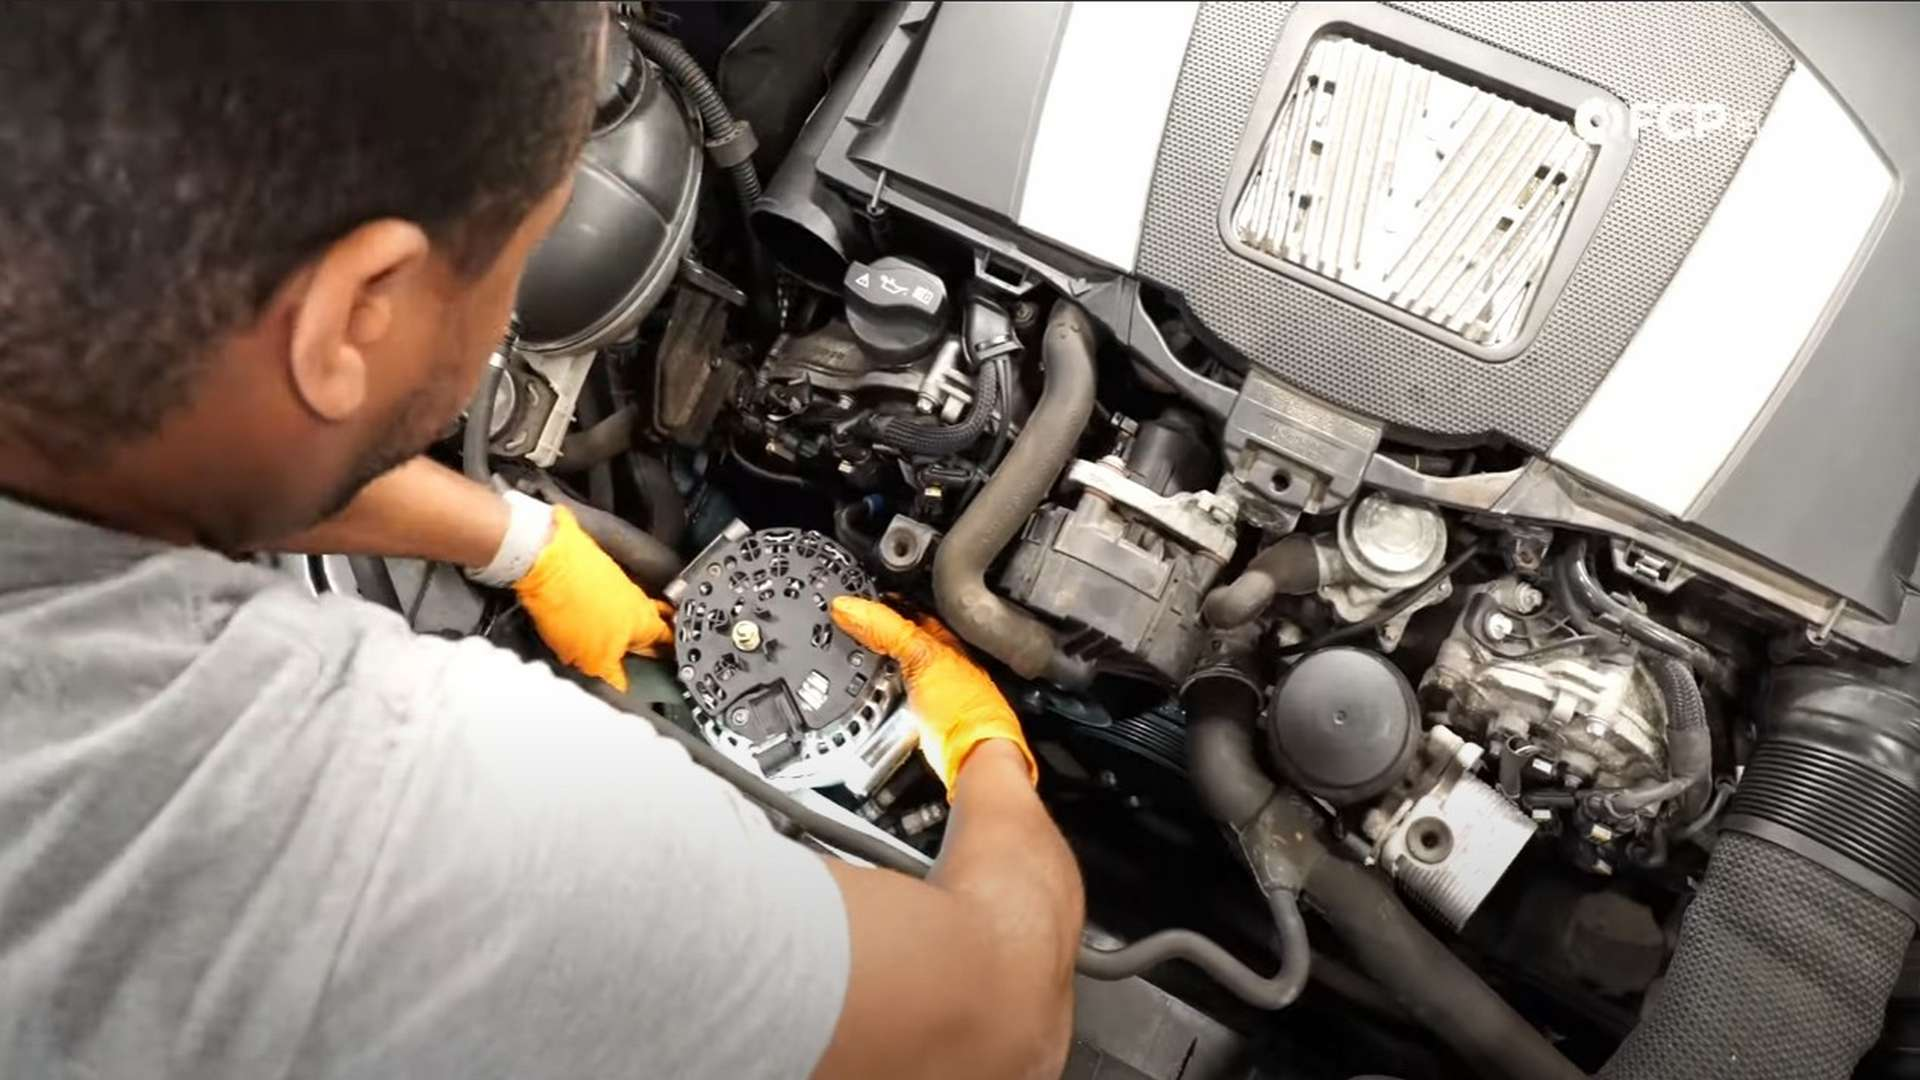 How To Replace The Alternator & Drive Belt On A Mercedes W212 & W204